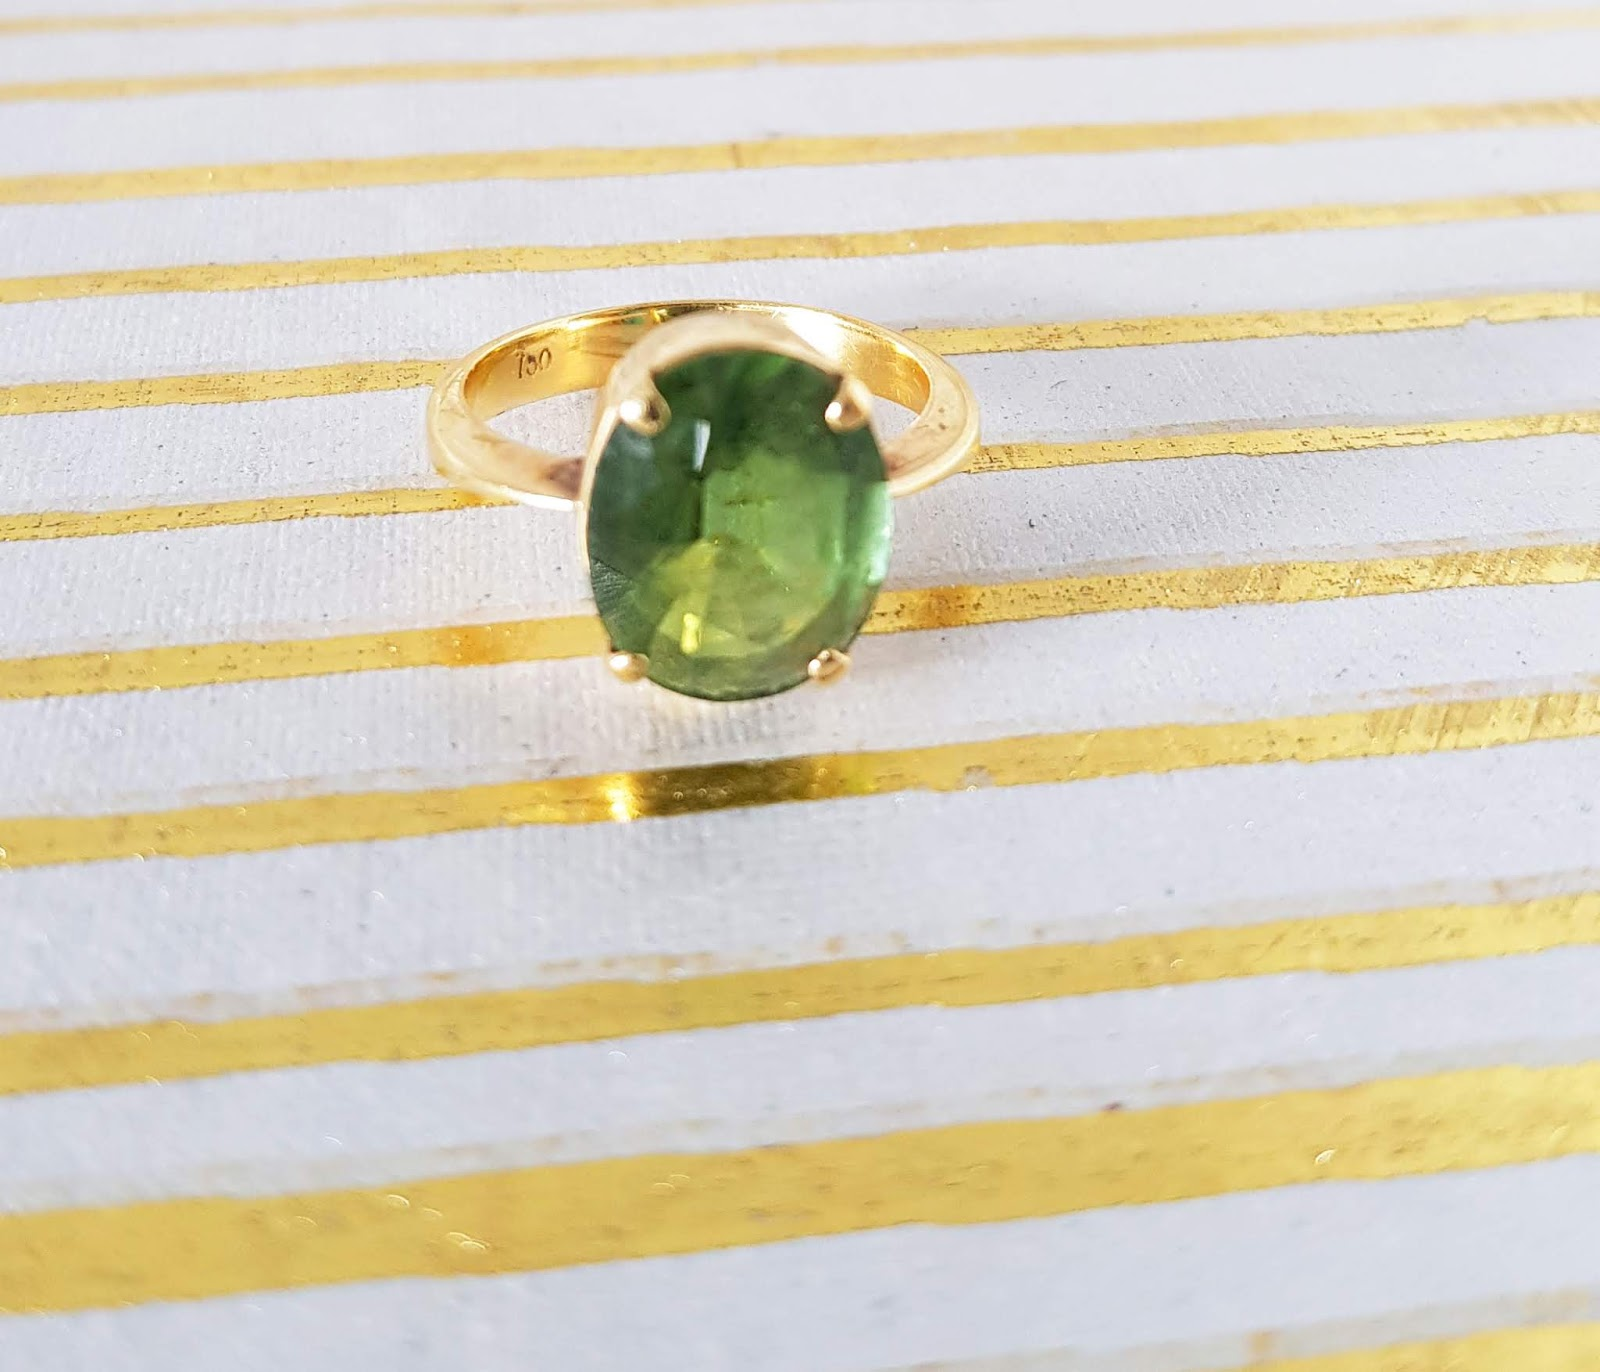 Close-up of a green tourmaline from Sri Lanka set in 18 ct yellow gold.